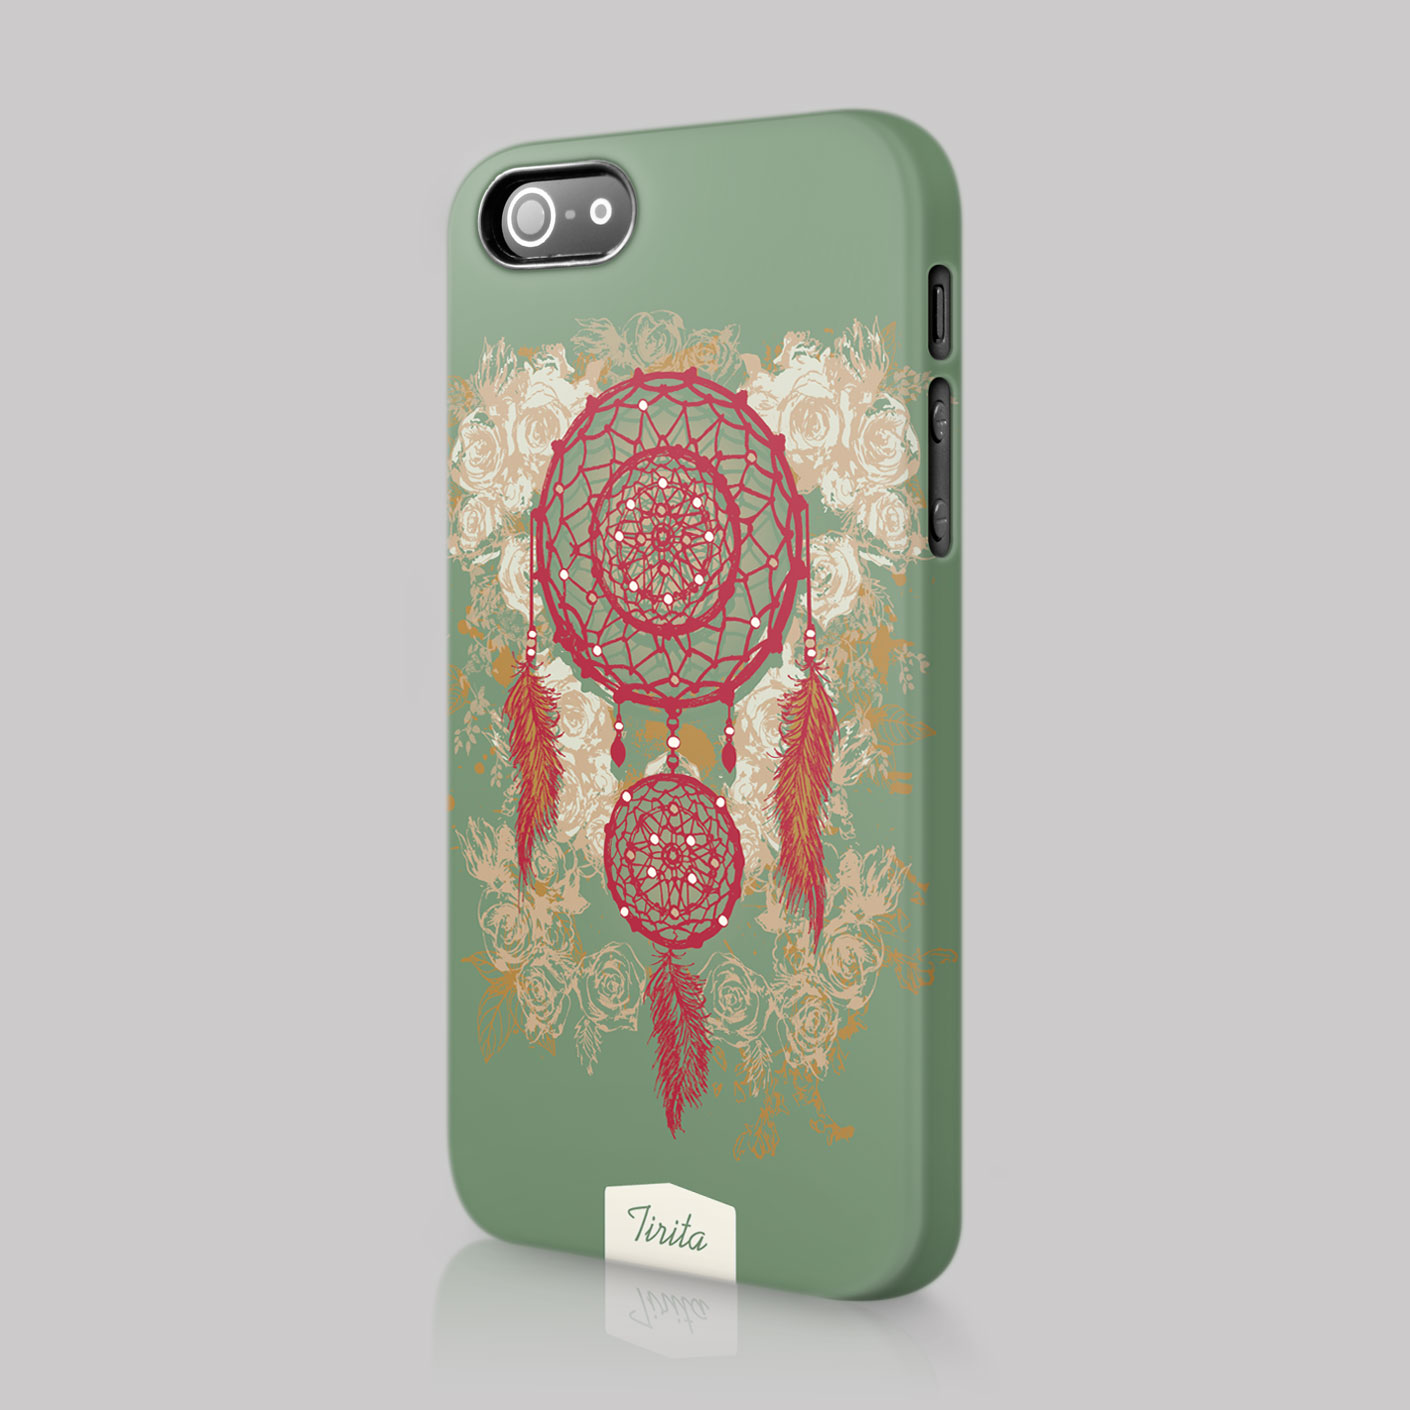 Gypsy Bohemian Boho Chic Feathers Case Hard Cover For LG Amazon Blackberry